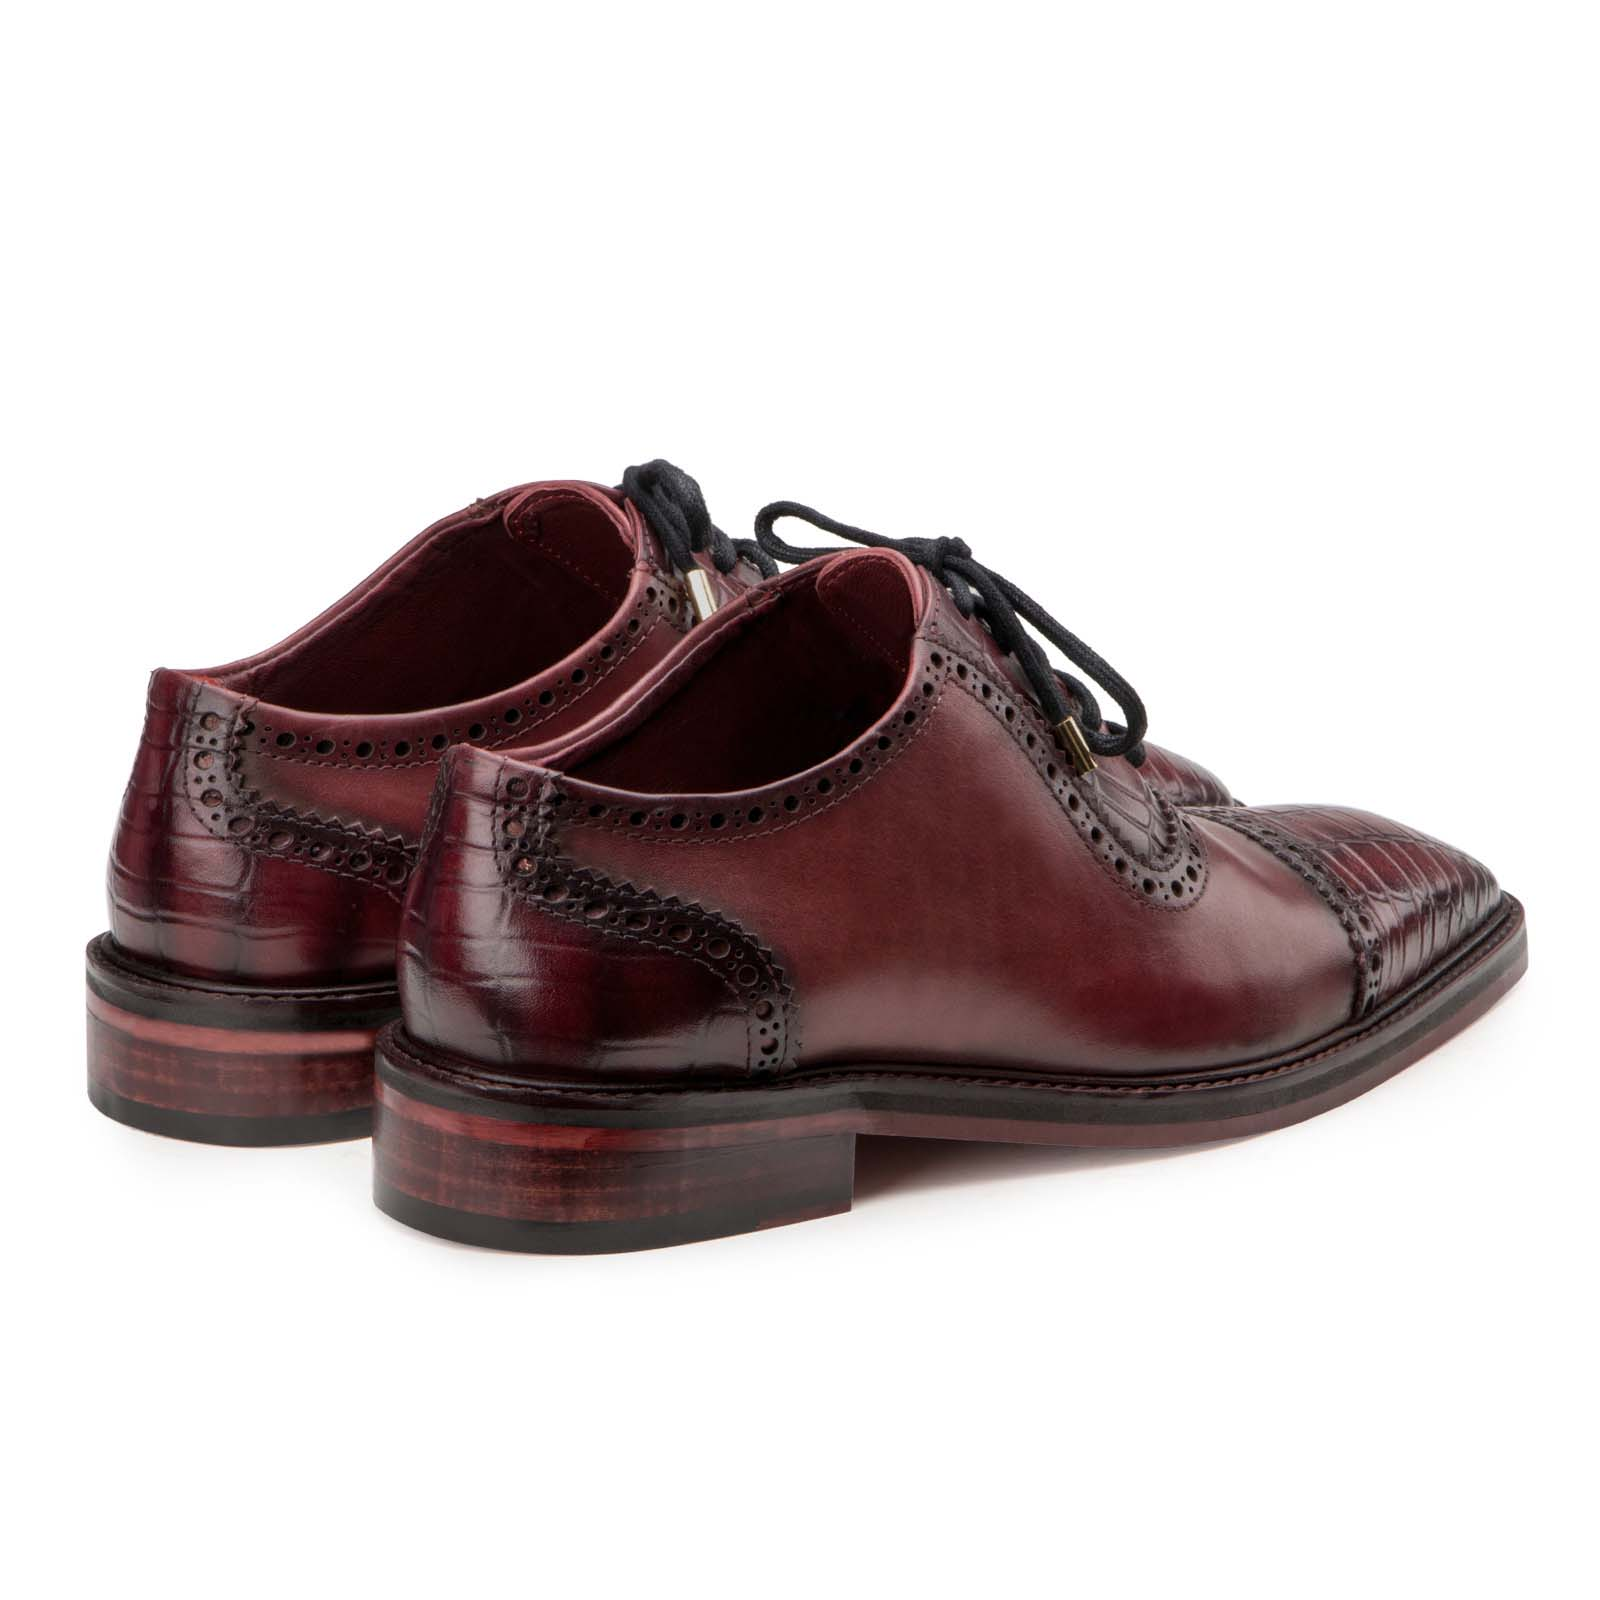 """Hagen"" Croc CapToe Wine Oxford"